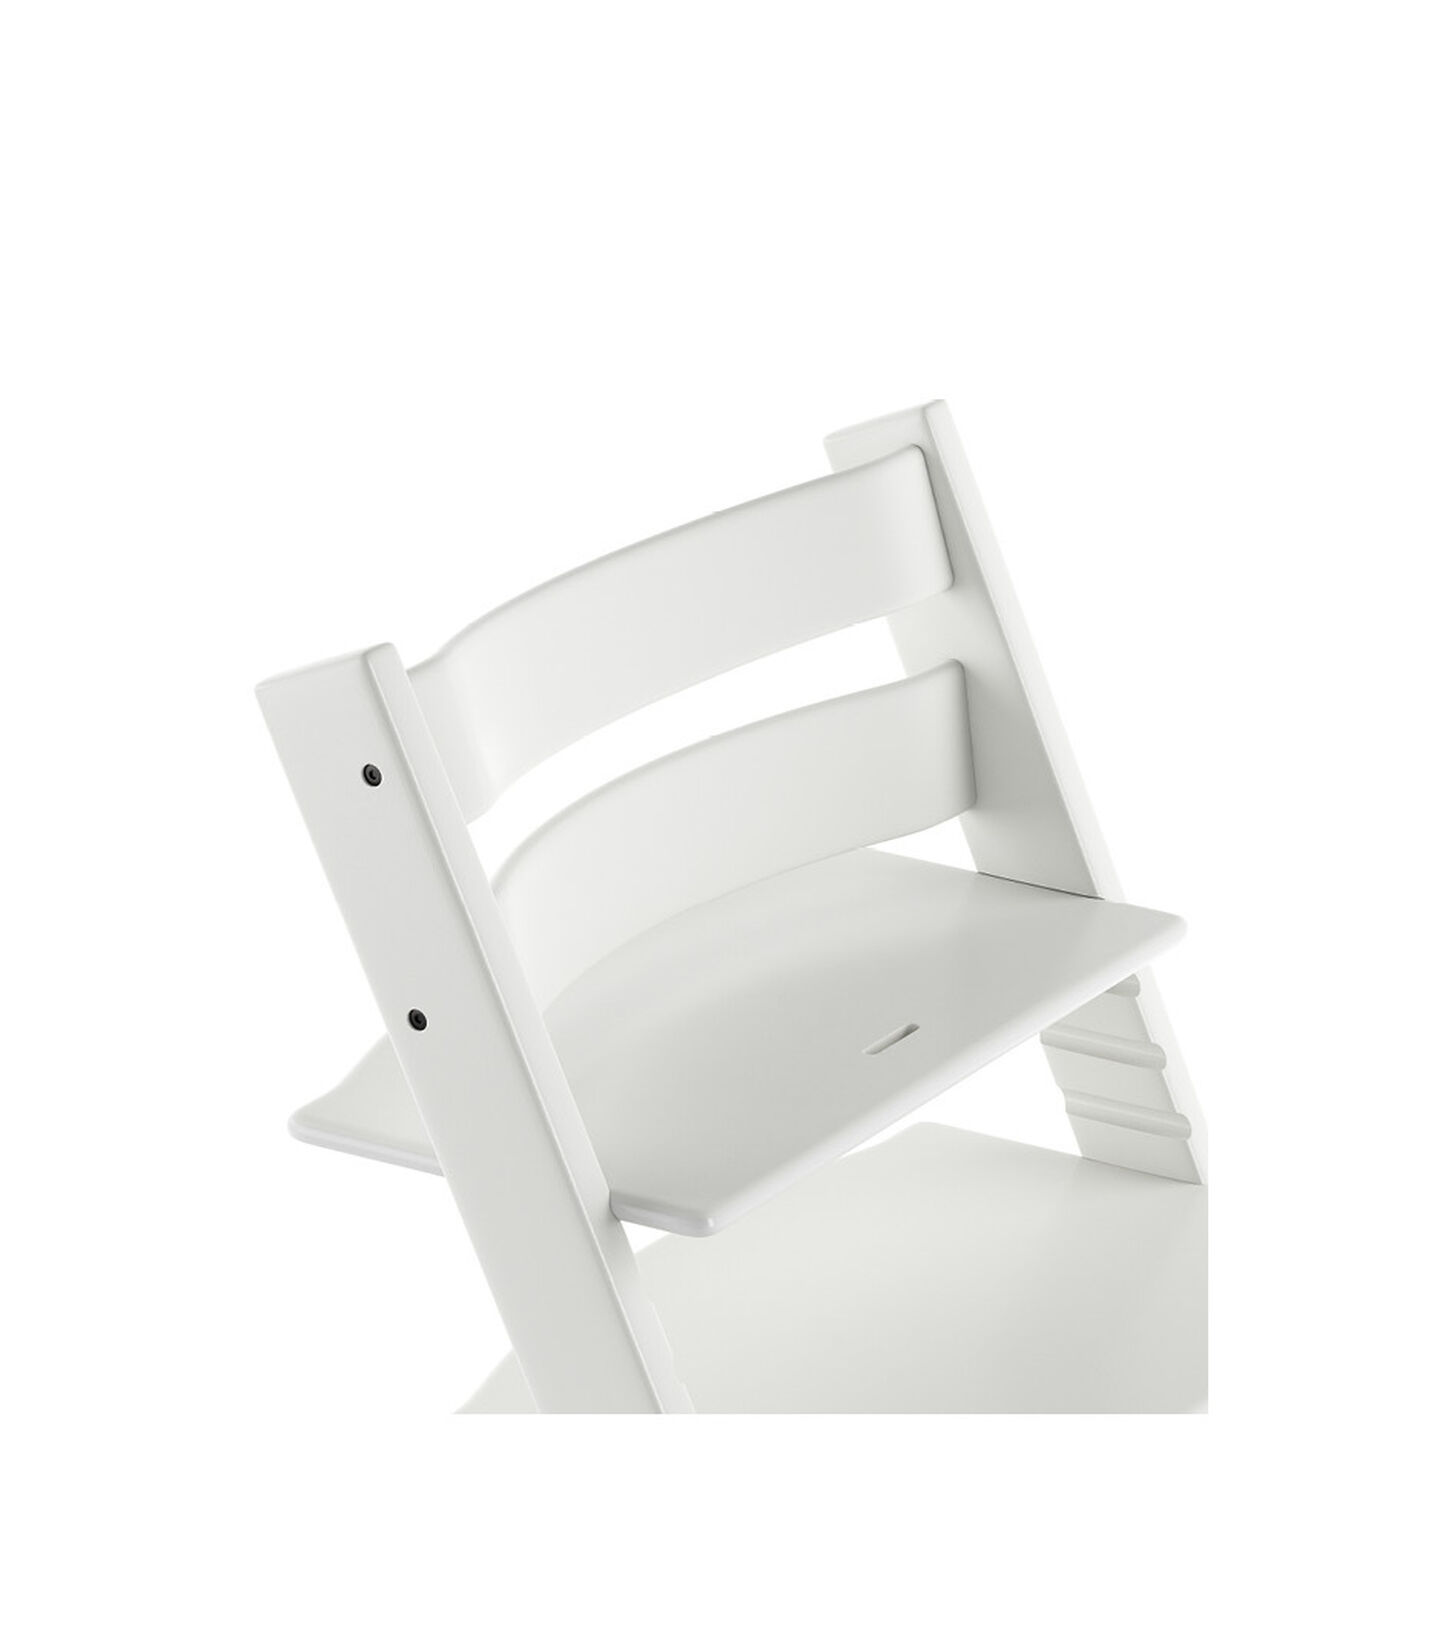 Tripp Trapp® Chair close up 3D rendering White